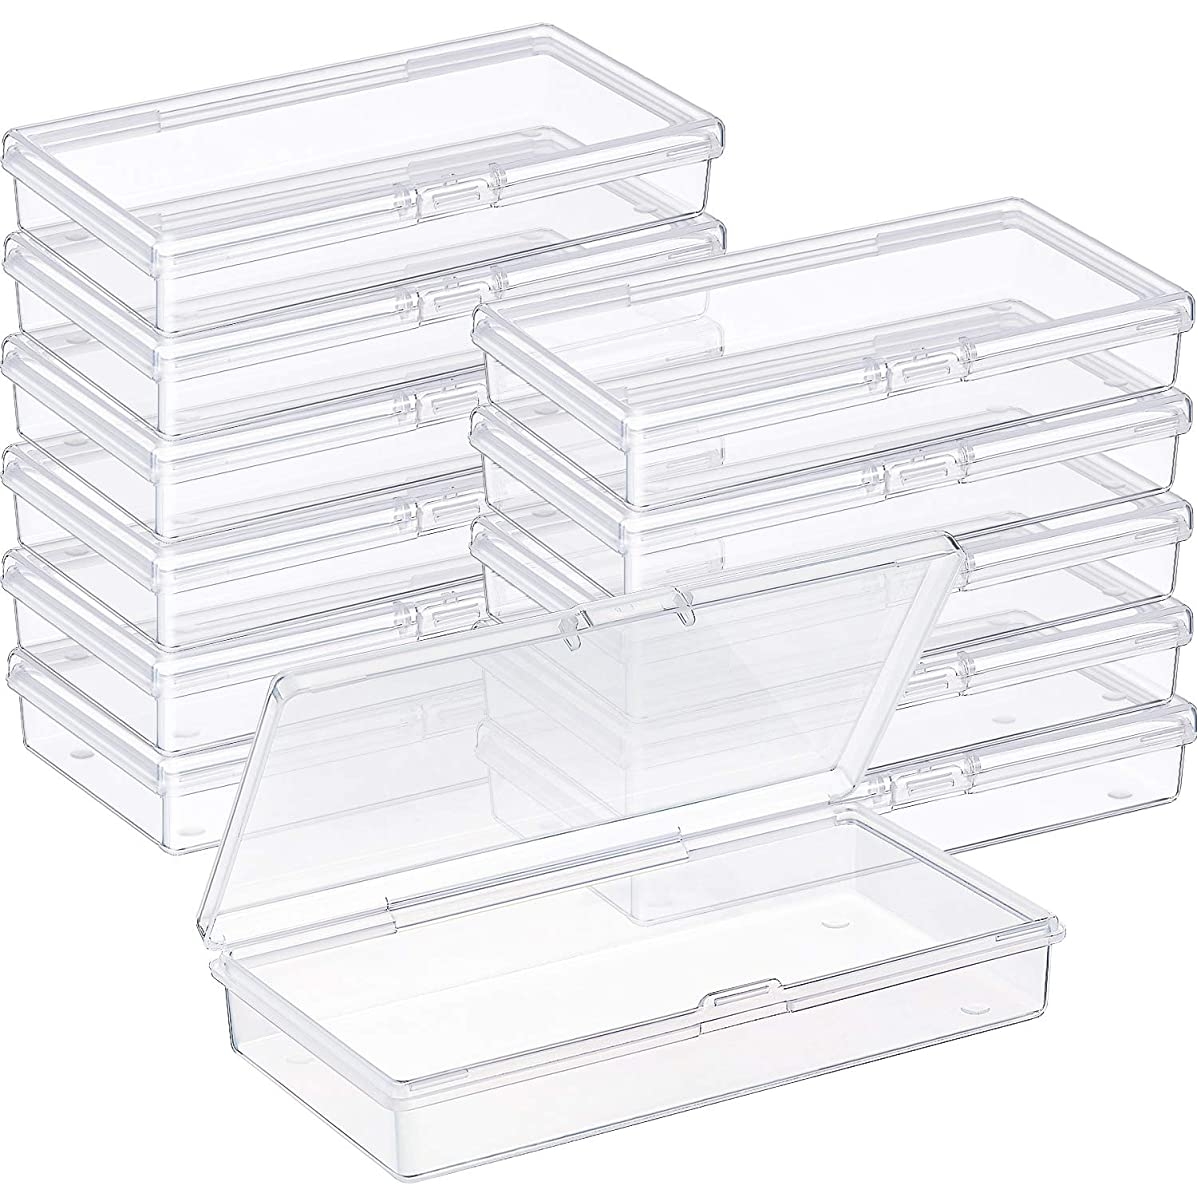 SATINIOR 12 Pack Clear Plastic Beads Storage Containers Box with Hinged Lid for Beads and More (4.8 x 2.45 x 0.9 Inch)